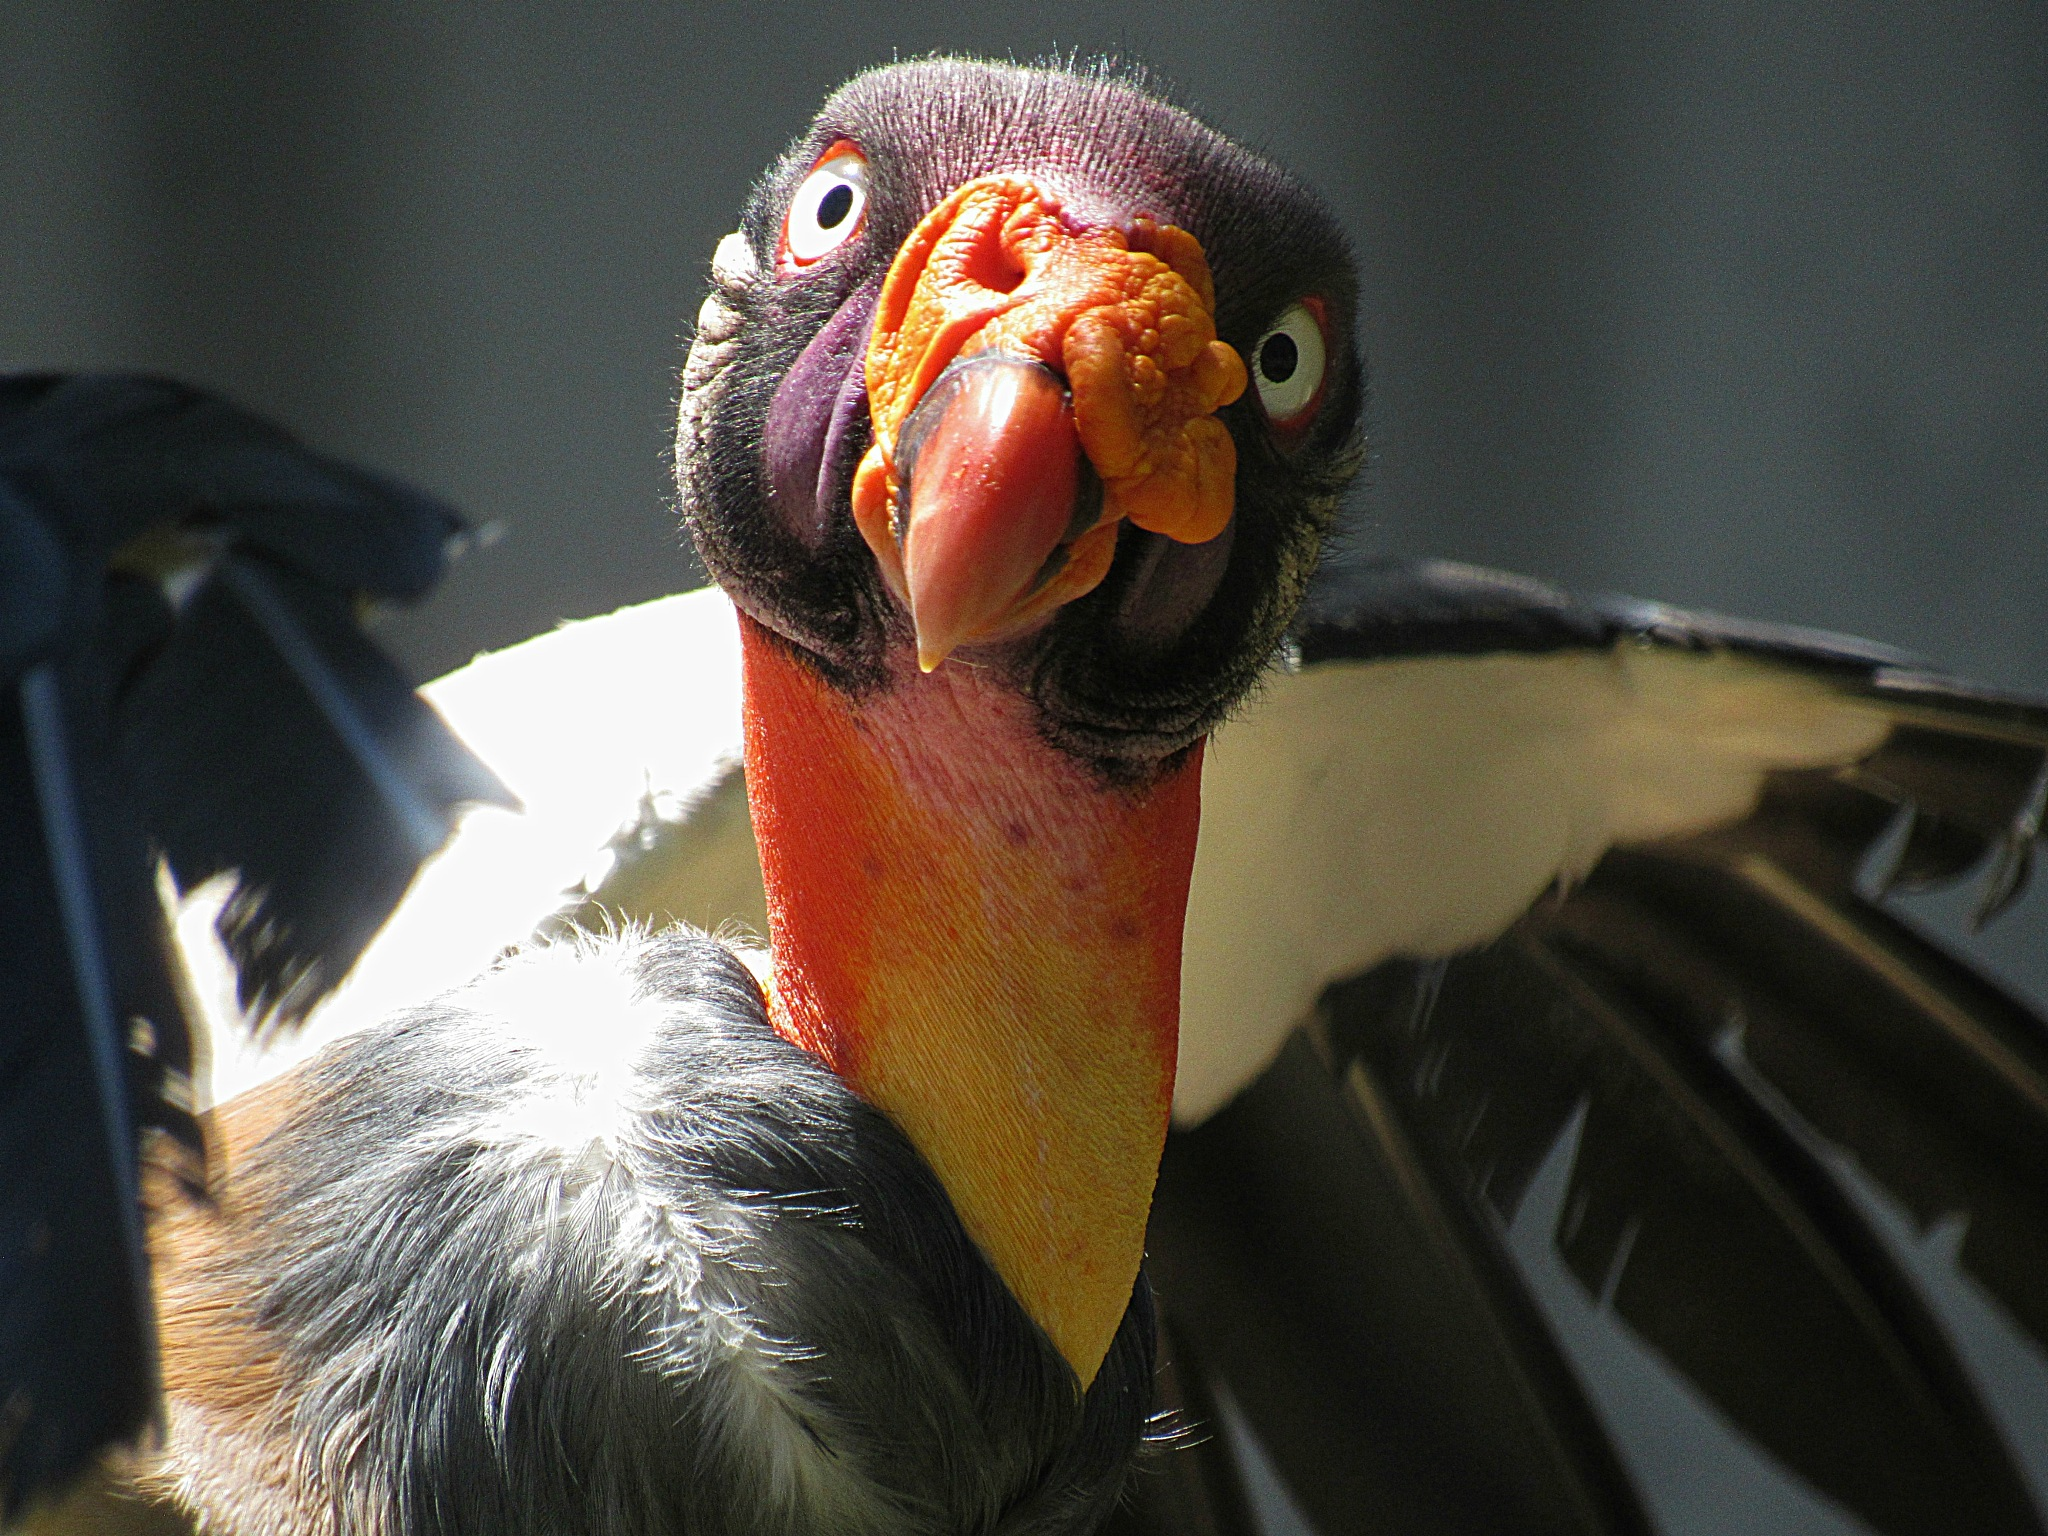 King Vulture his name Ferdinand by Carla Hepp